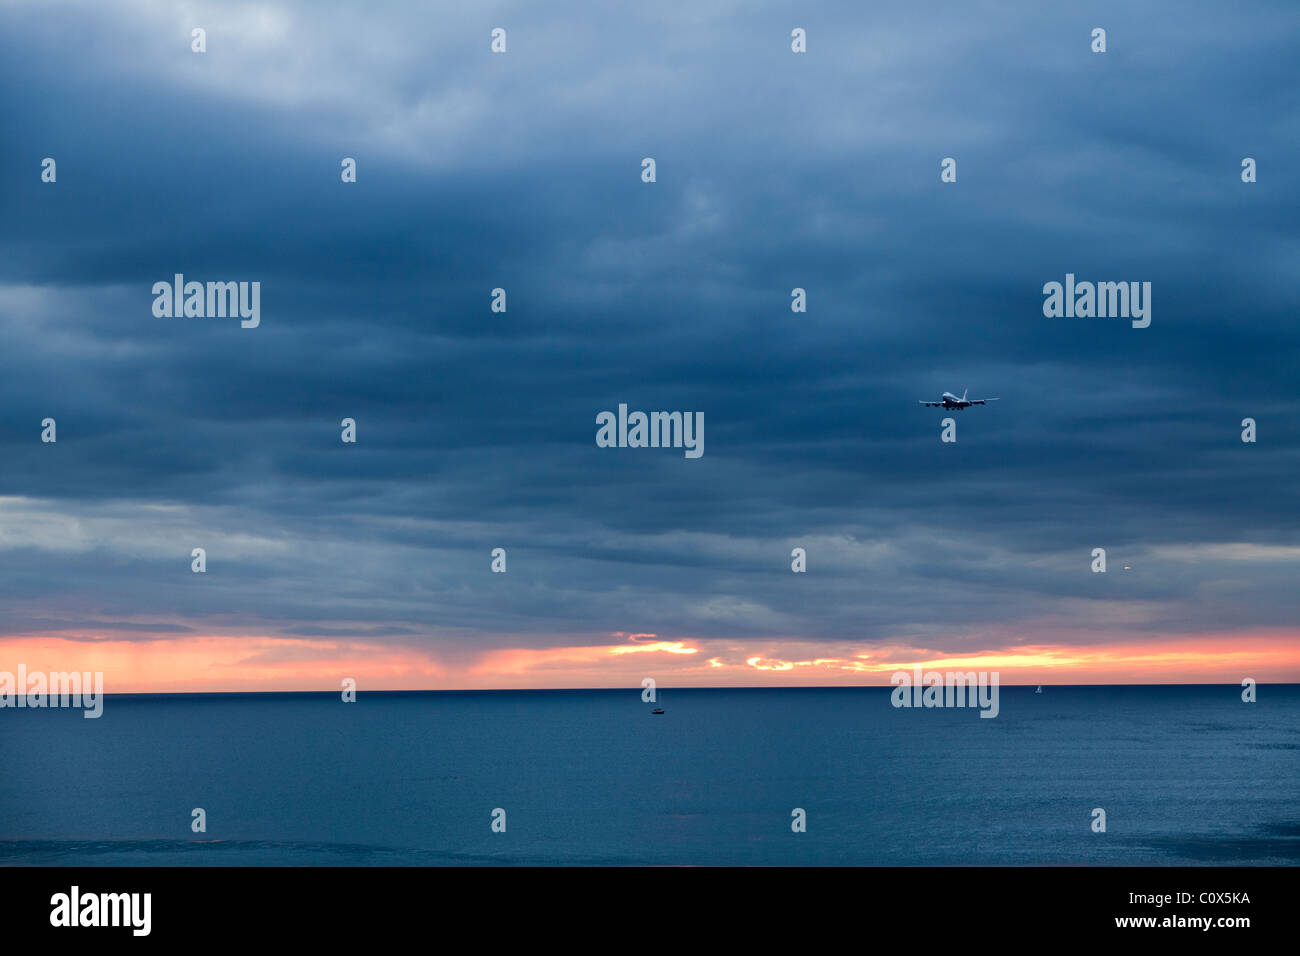 Aircraft passenger jet landing over ocean against cloudy dramatic sky. Dockweiler Beach in Los Angeles, California. - Stock Image